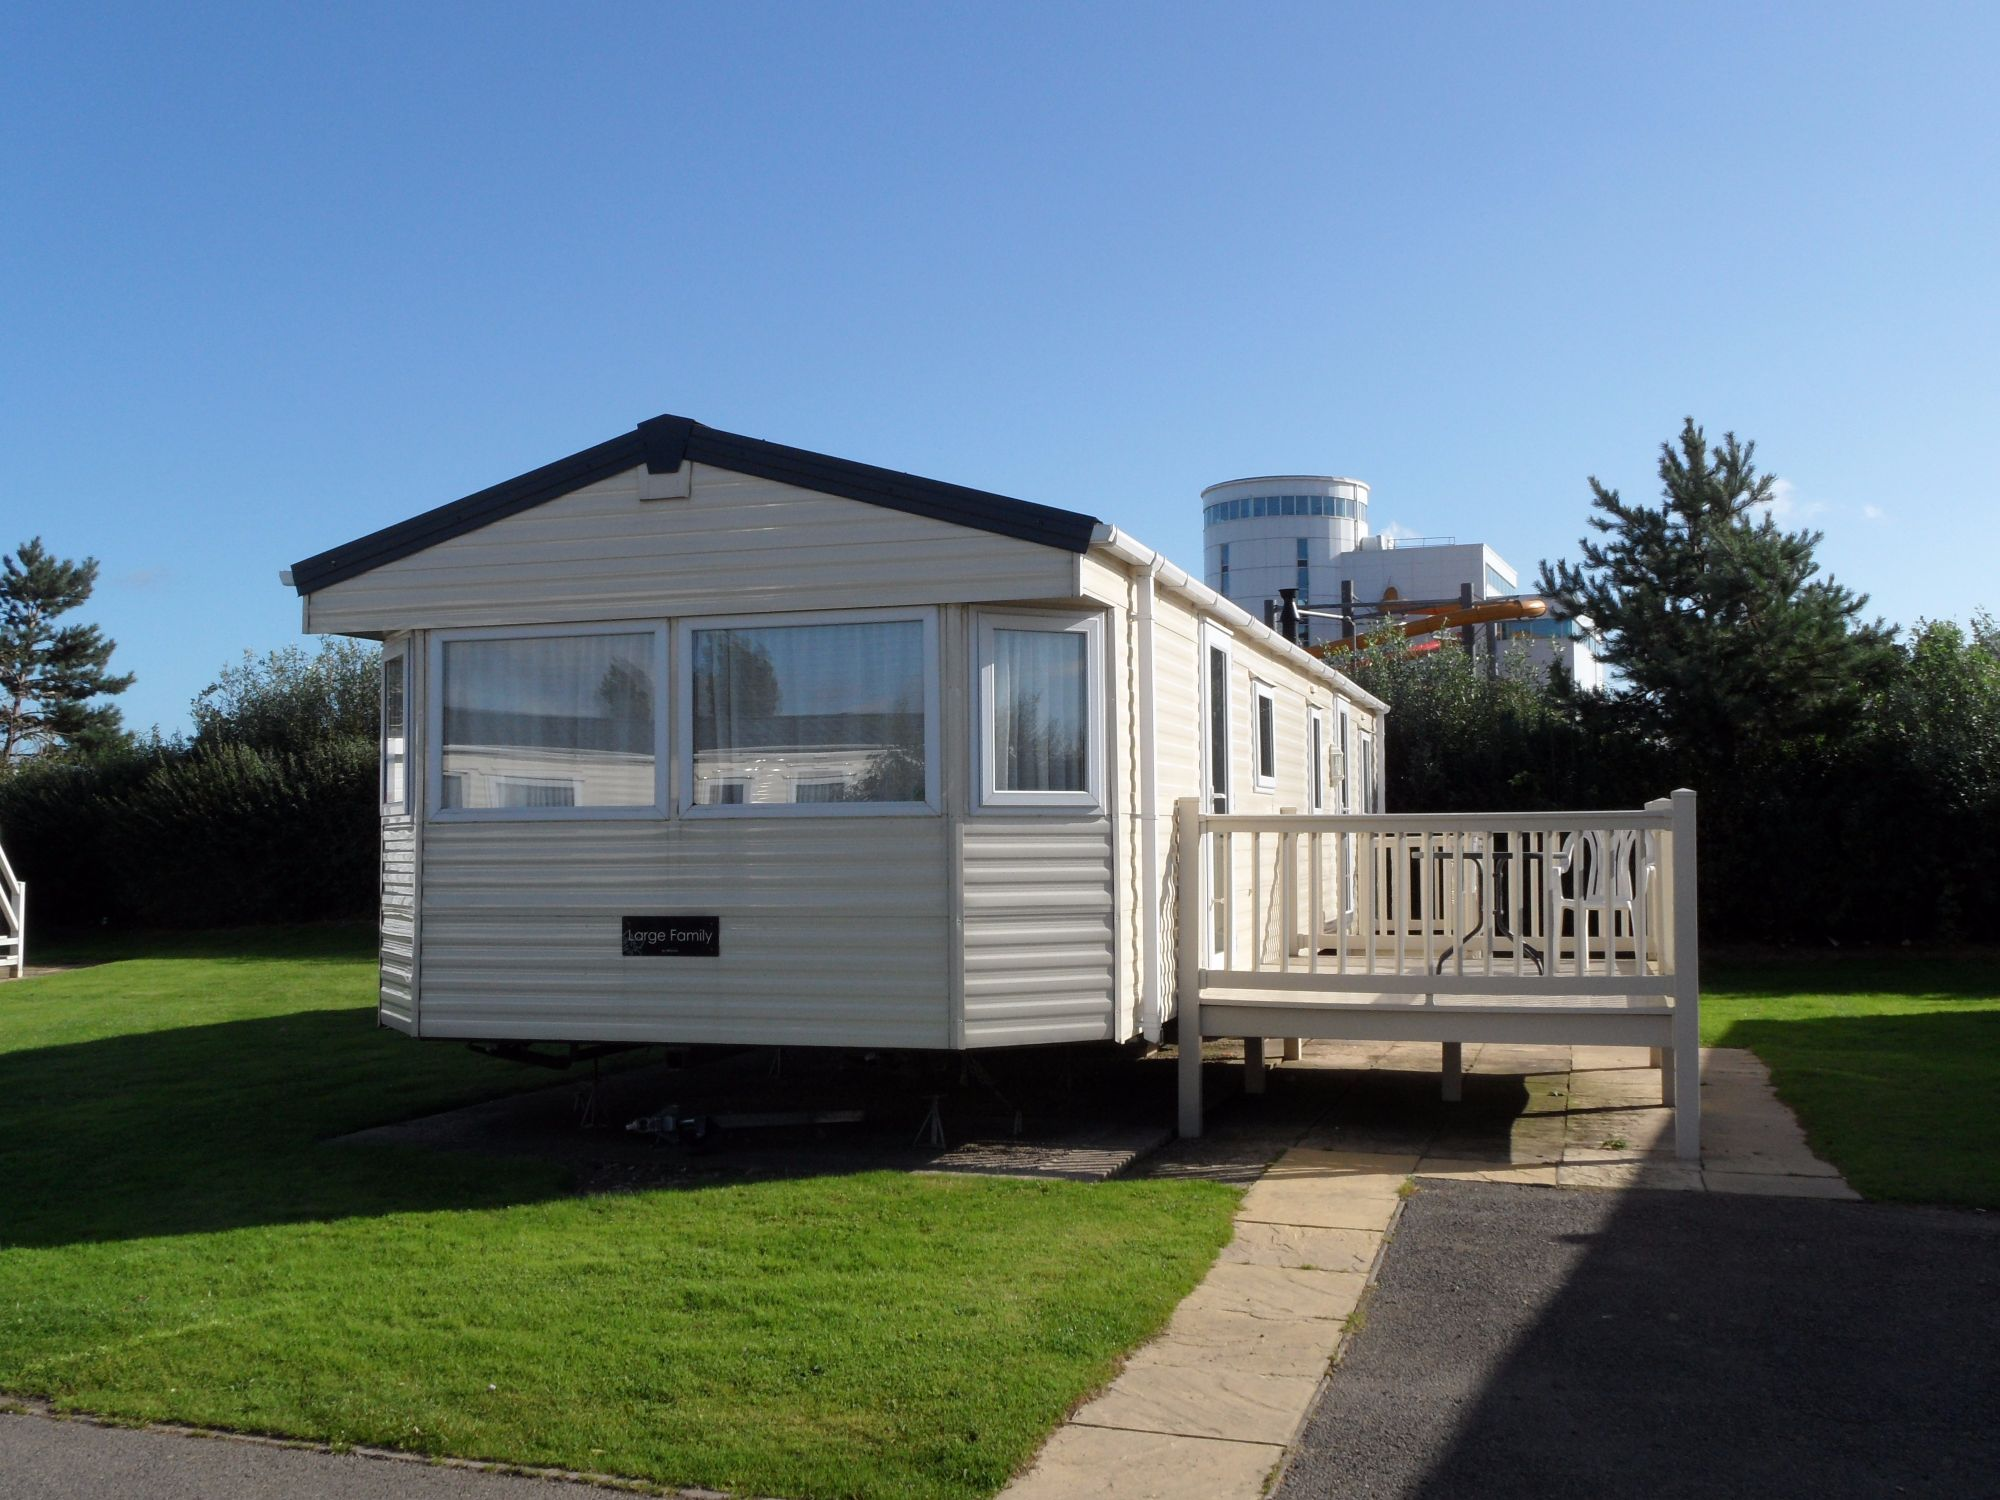 Static Caravans for hire at Butlins Skegness